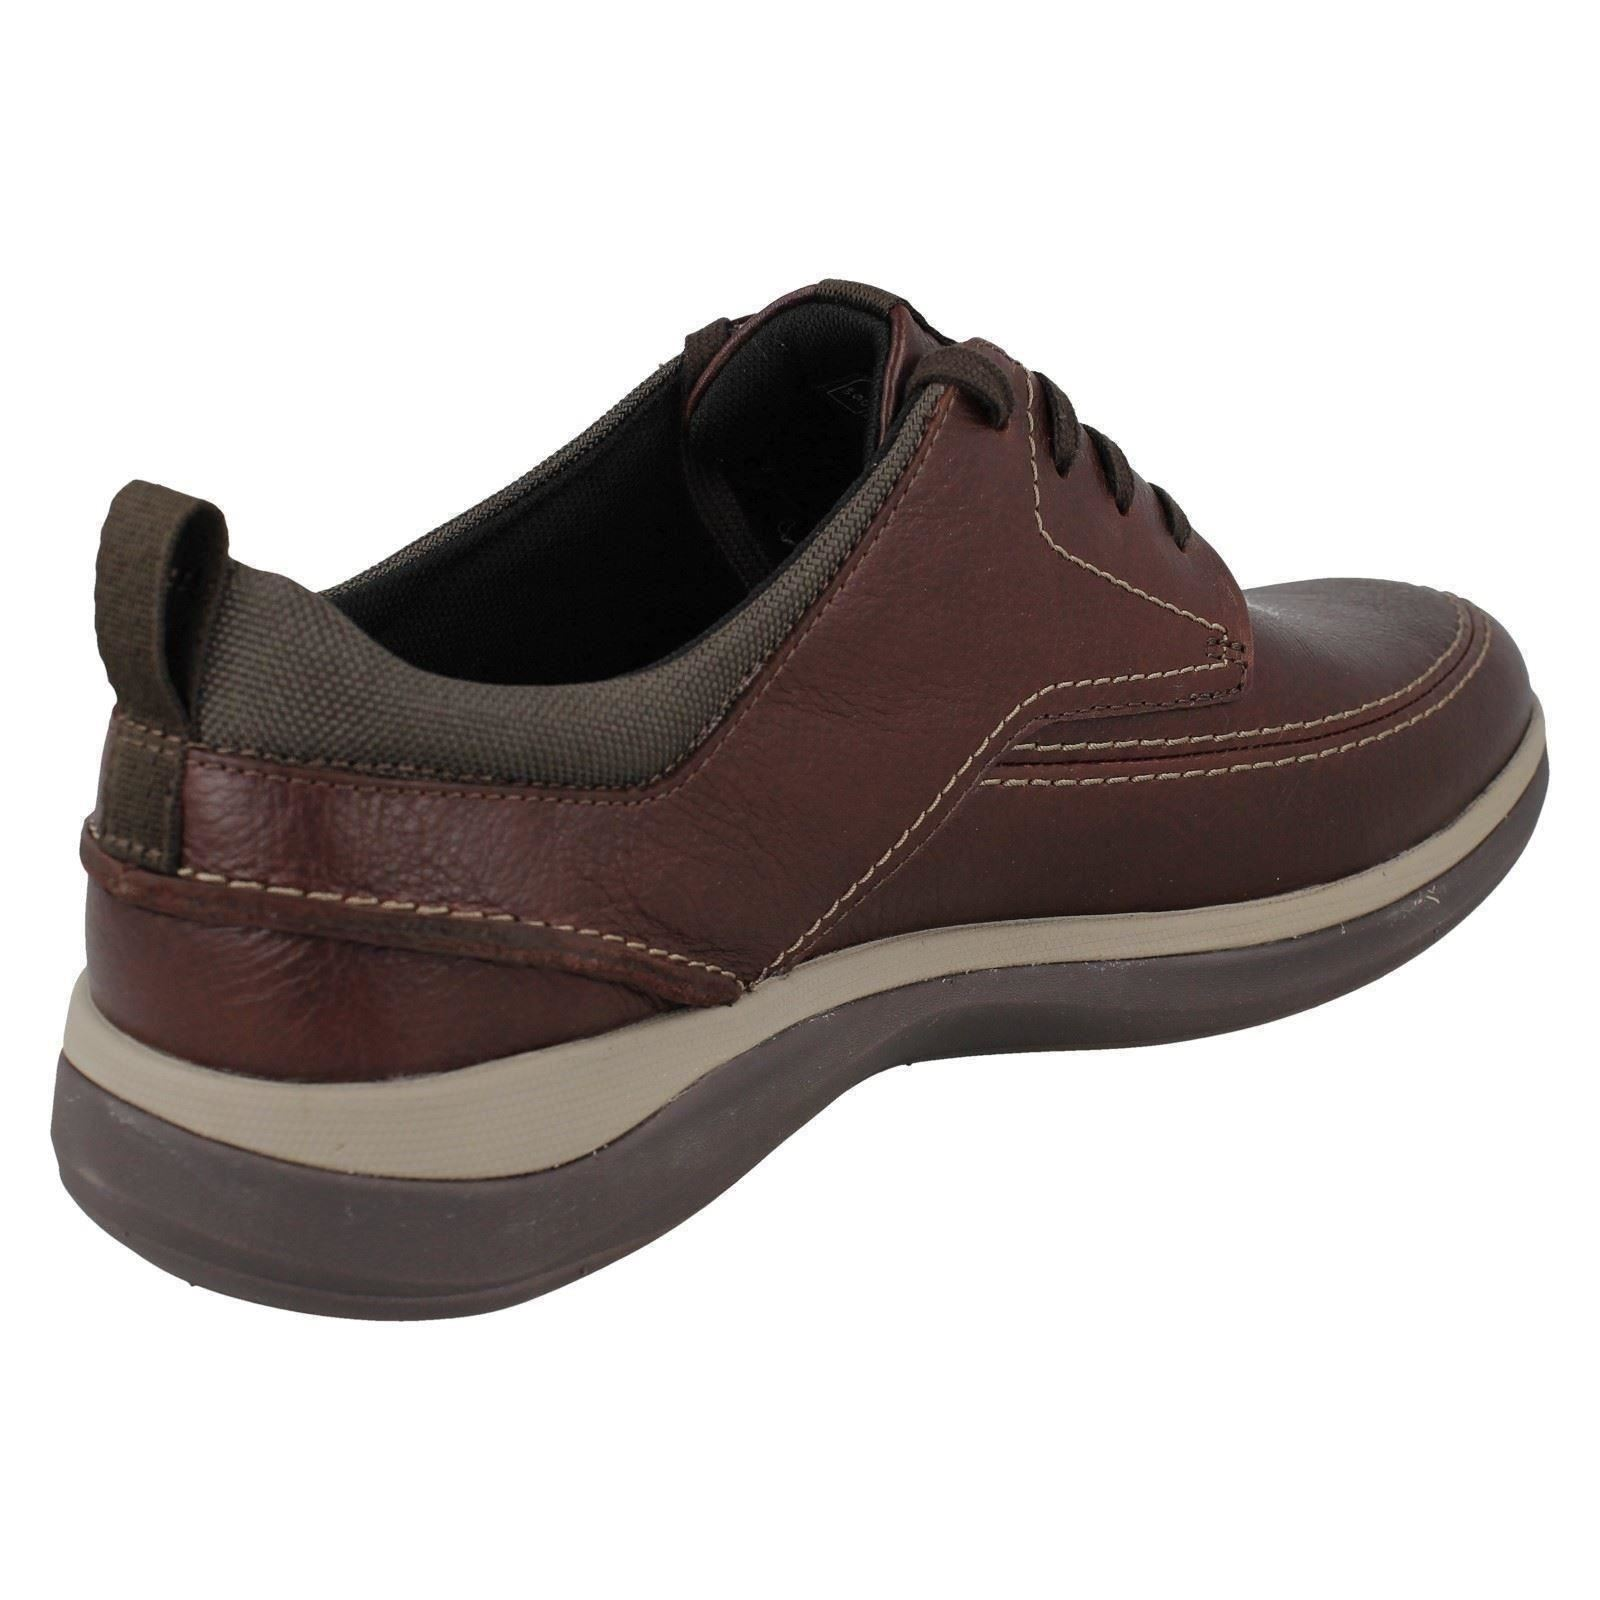 Mens-Unstructured-by-Clarks-Lace-Up-Shoes-039-Garratt-Street-039 thumbnail 15